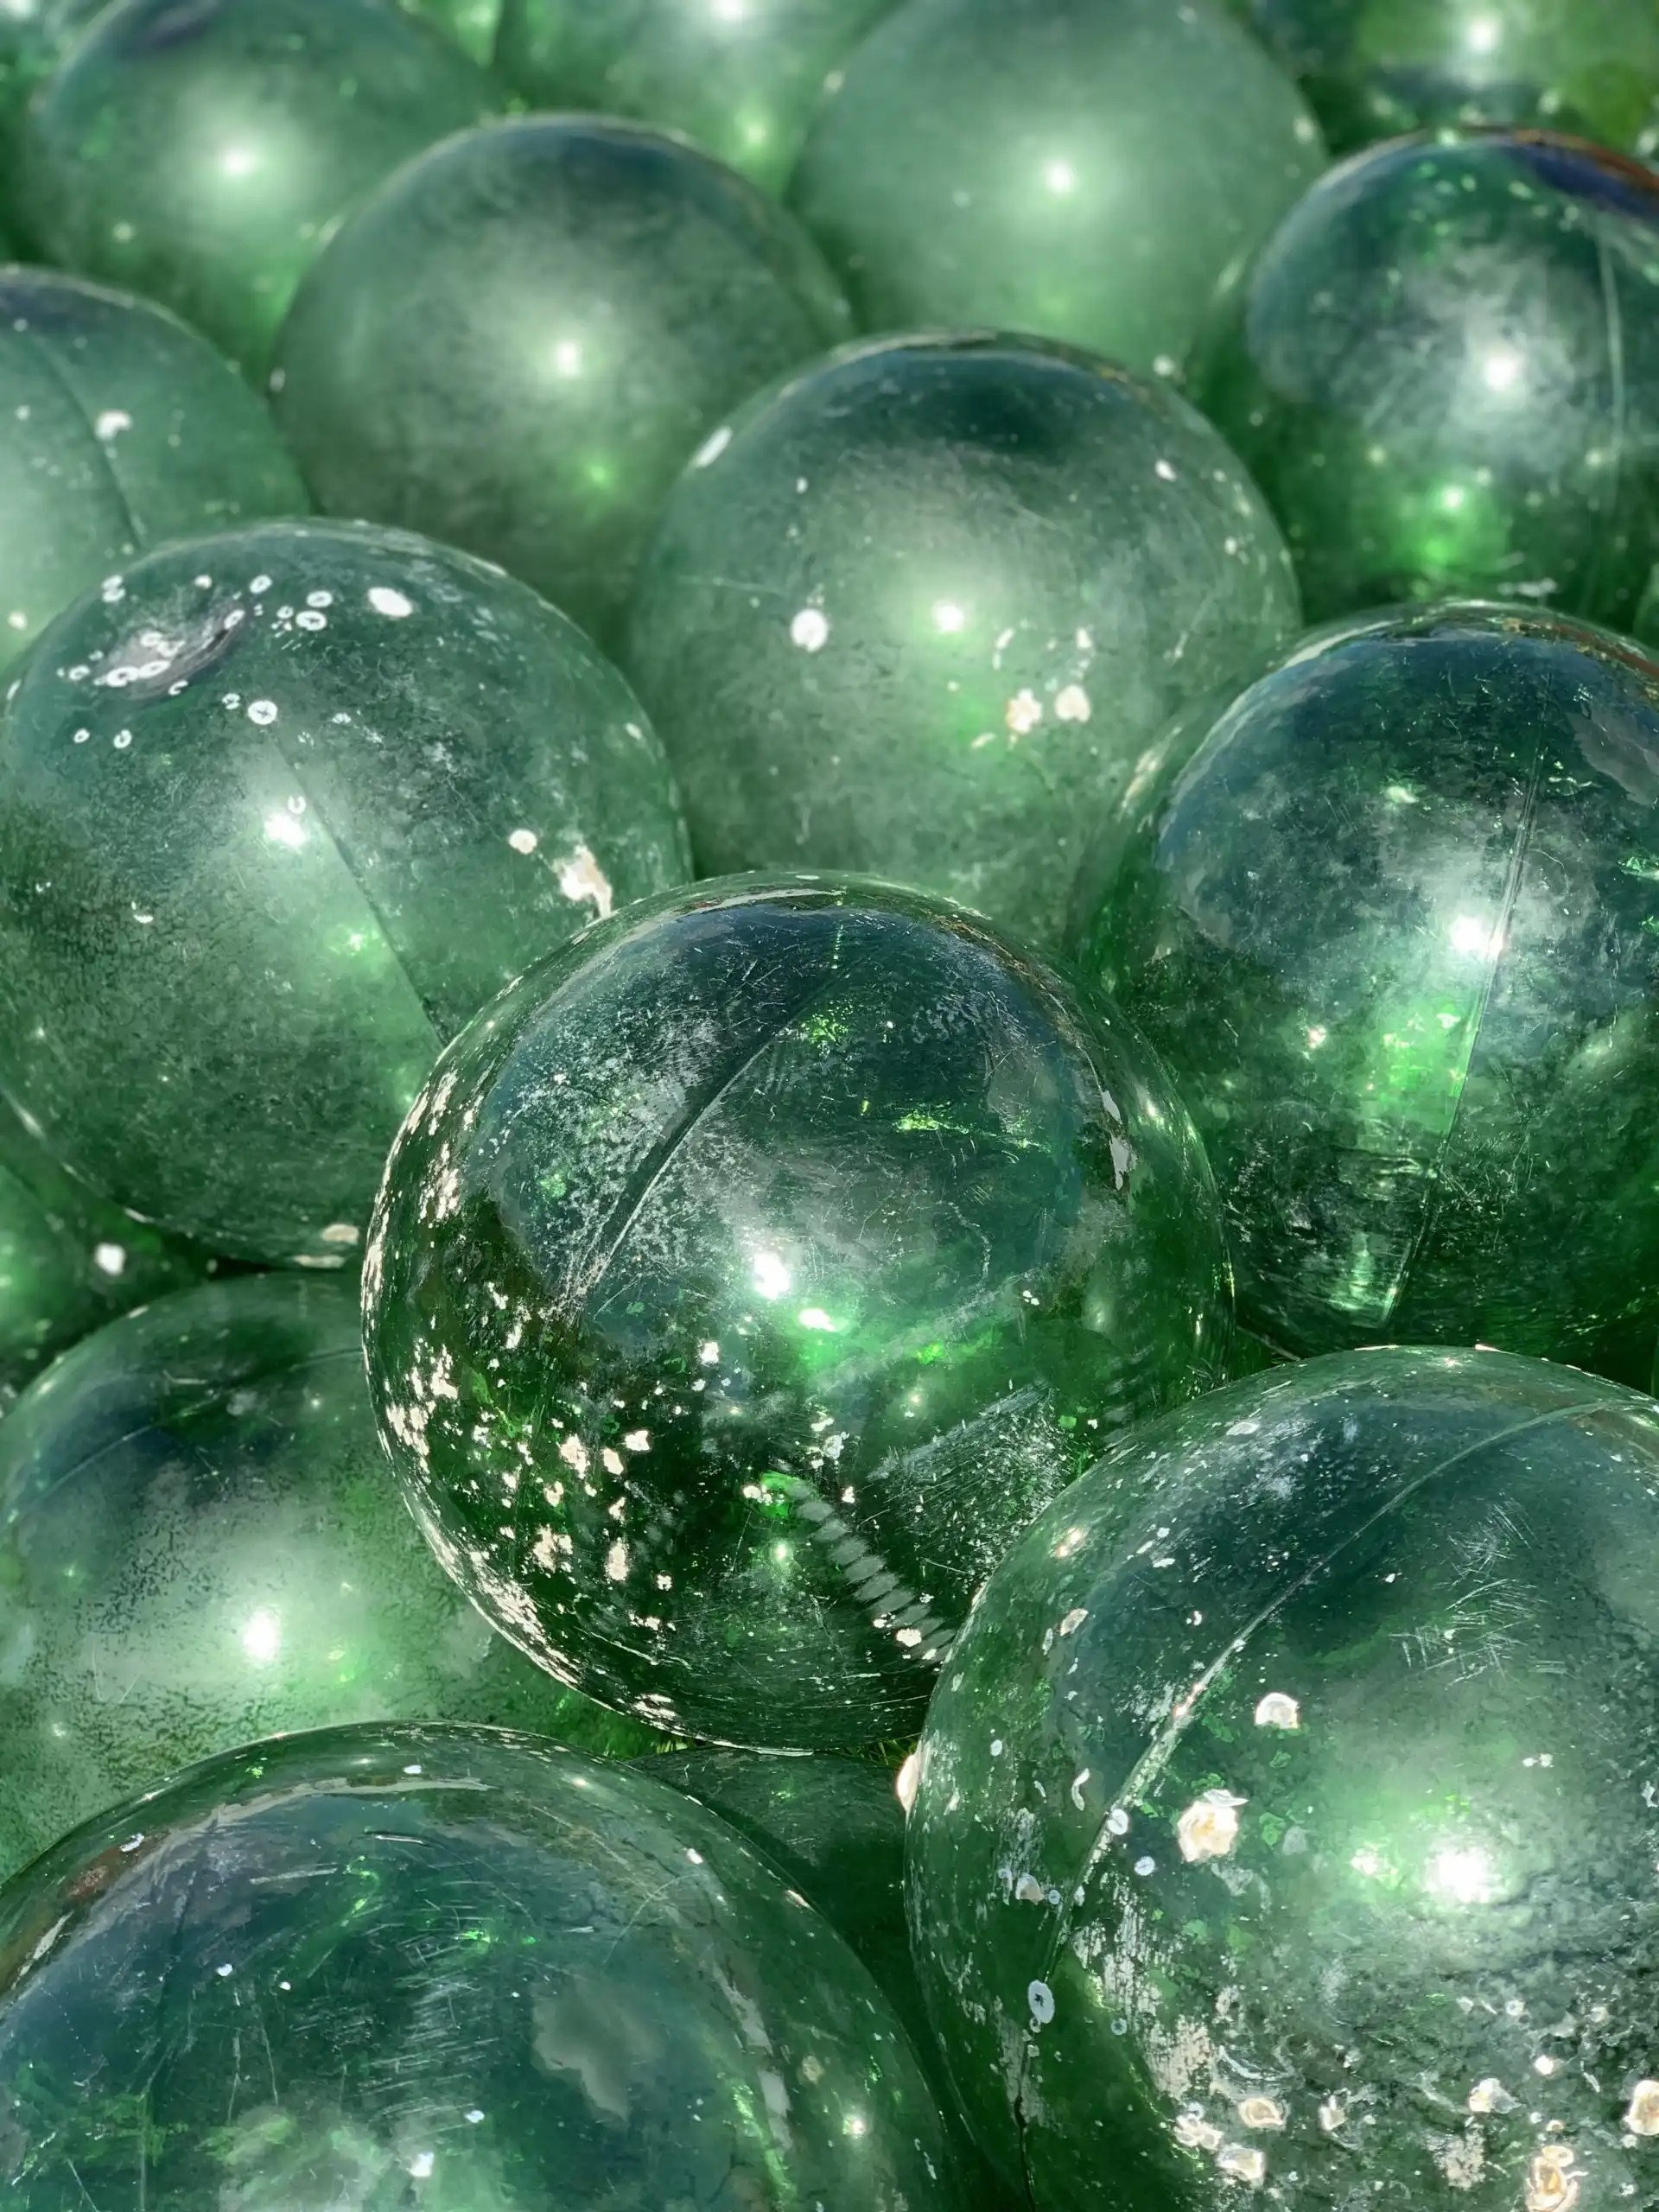 iPhone XS Max photography example: green glass balls